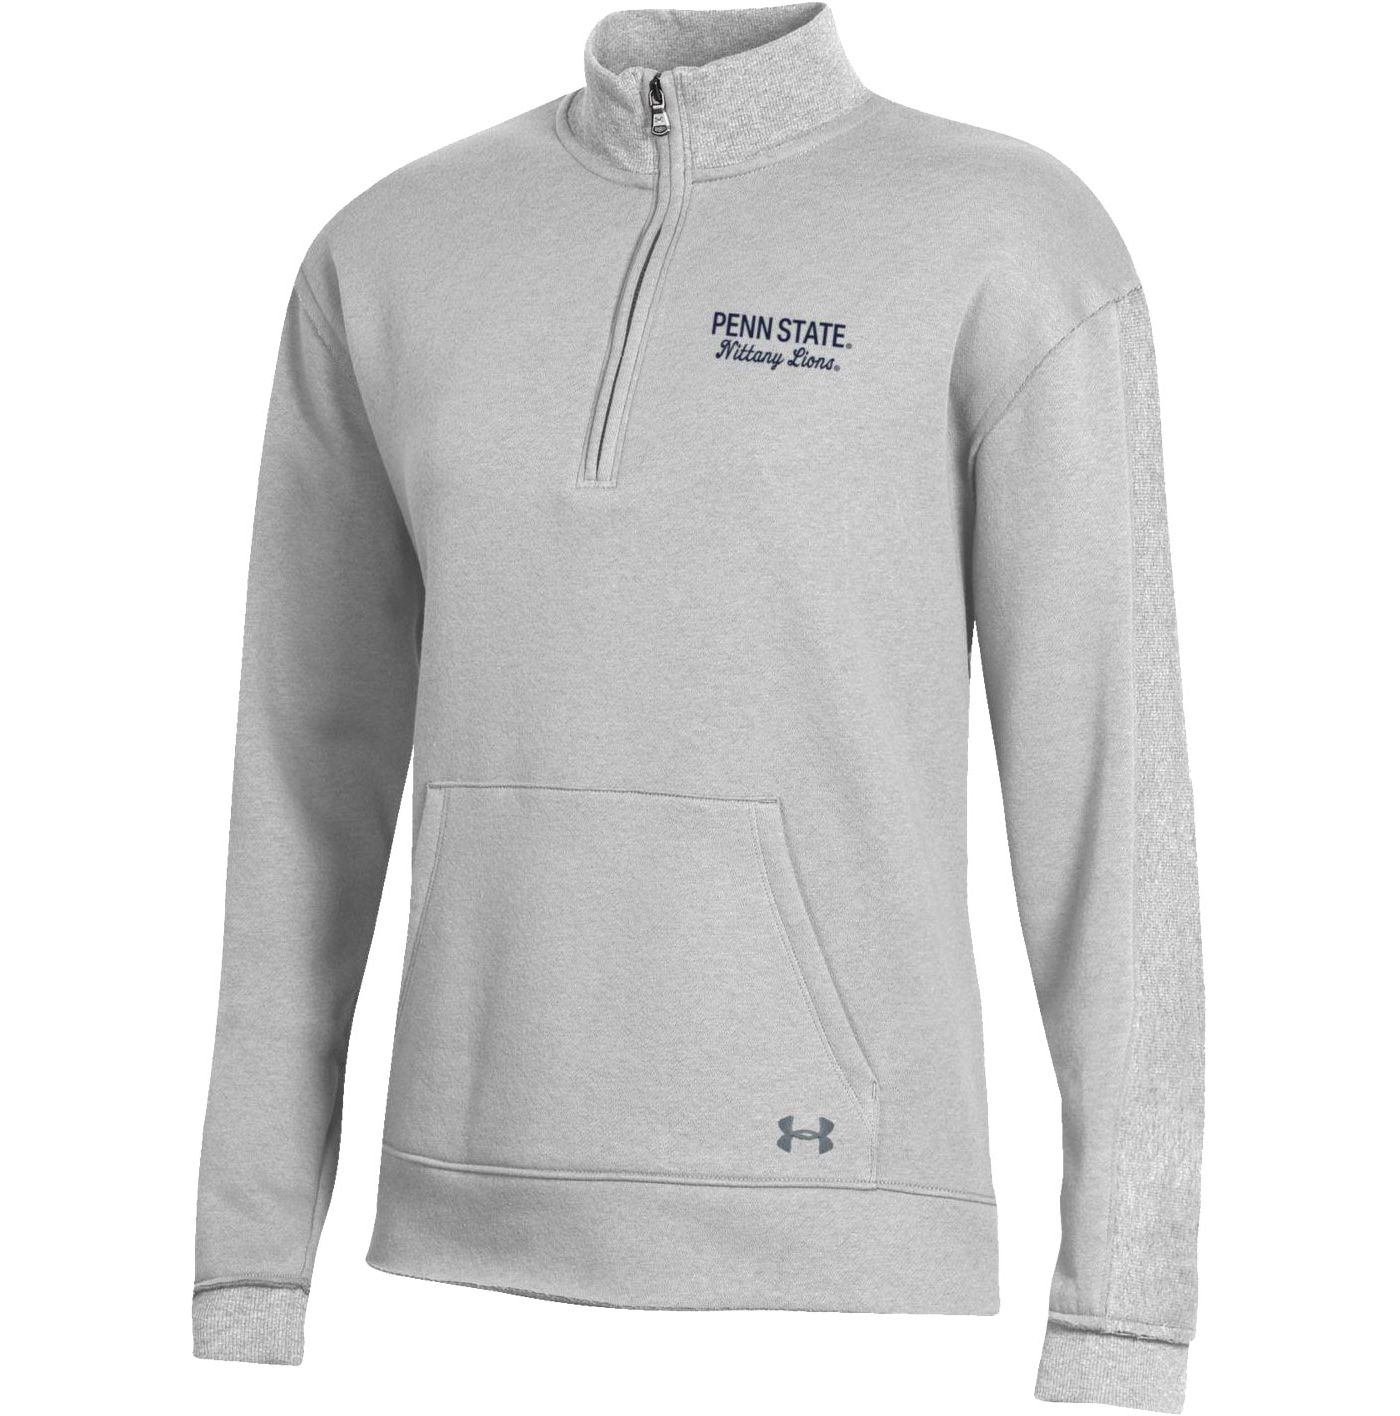 Under Armour Women's Penn State Nittany Lions Grey All Day Quarter-Zip Shirt